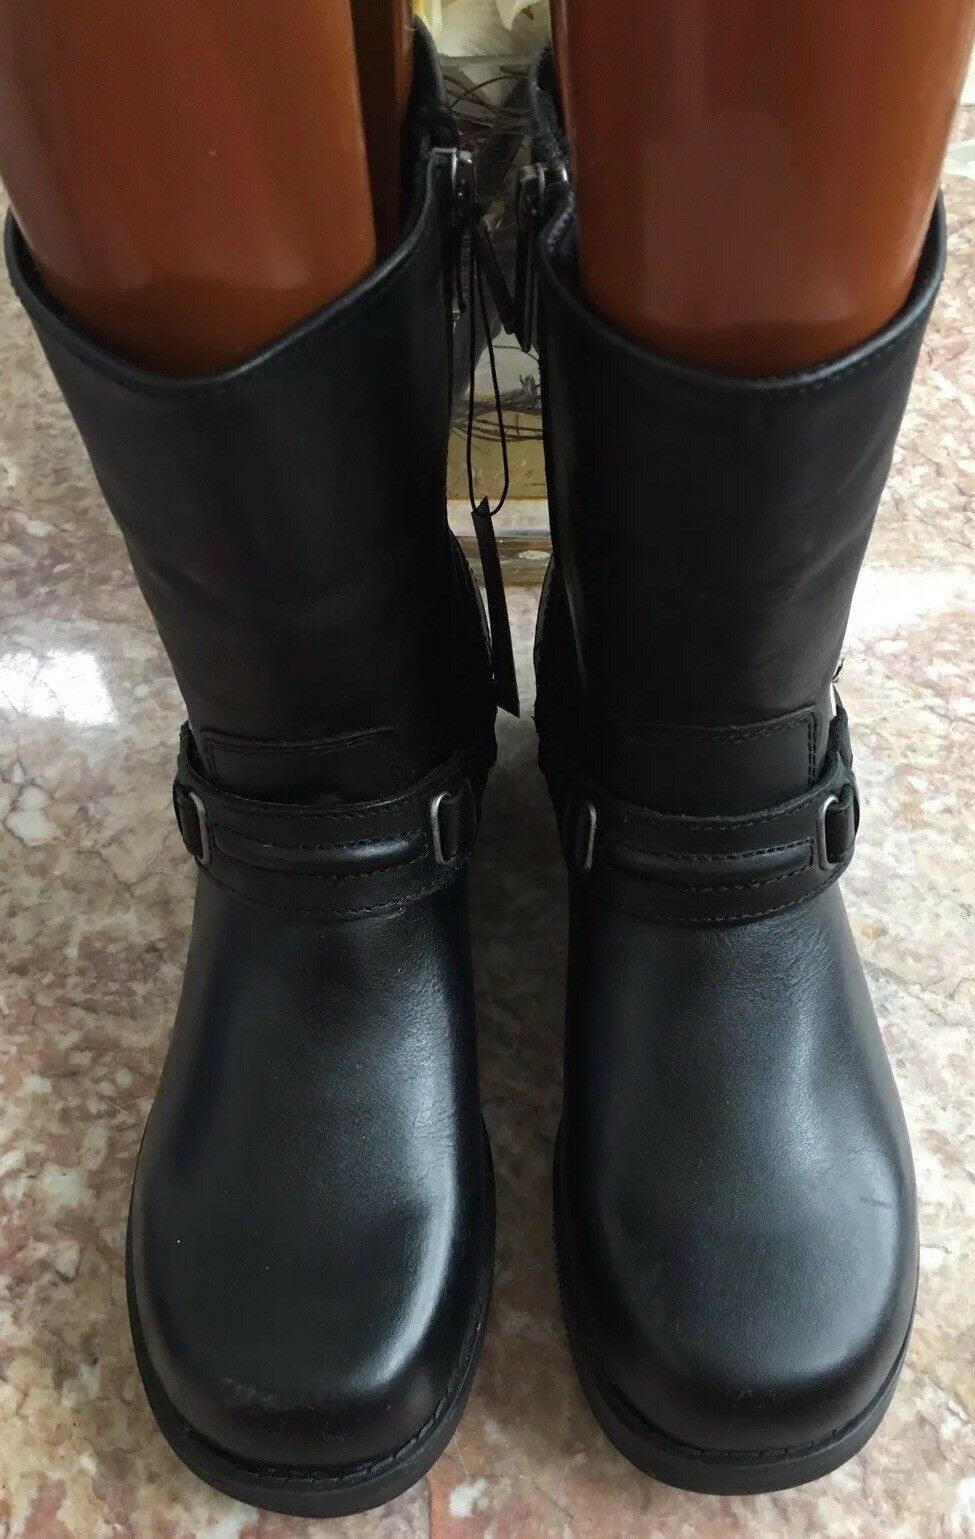 NWT NWT NWT Harley Davidson Women Christa Black Leather Zip Up Sz 9.5M Boots D85298 f8173a